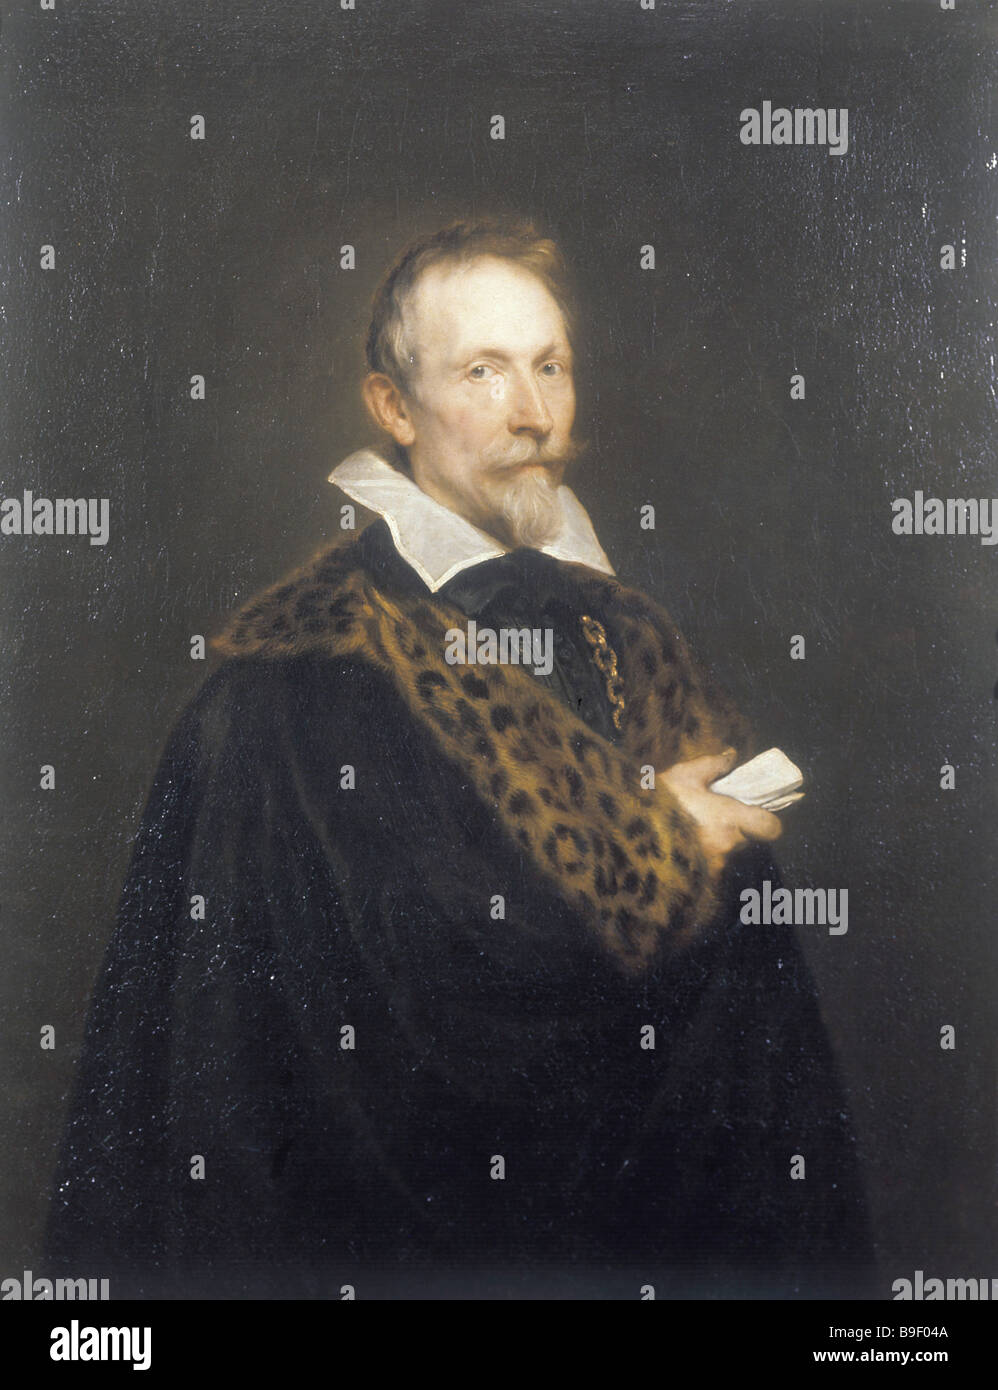 Sir Anthony van Dyck 1599 1641 Portrait of Jan van den Wouver Oil on canvas 106 x 83 cm State Pushkin Fine Arts - Stock Image